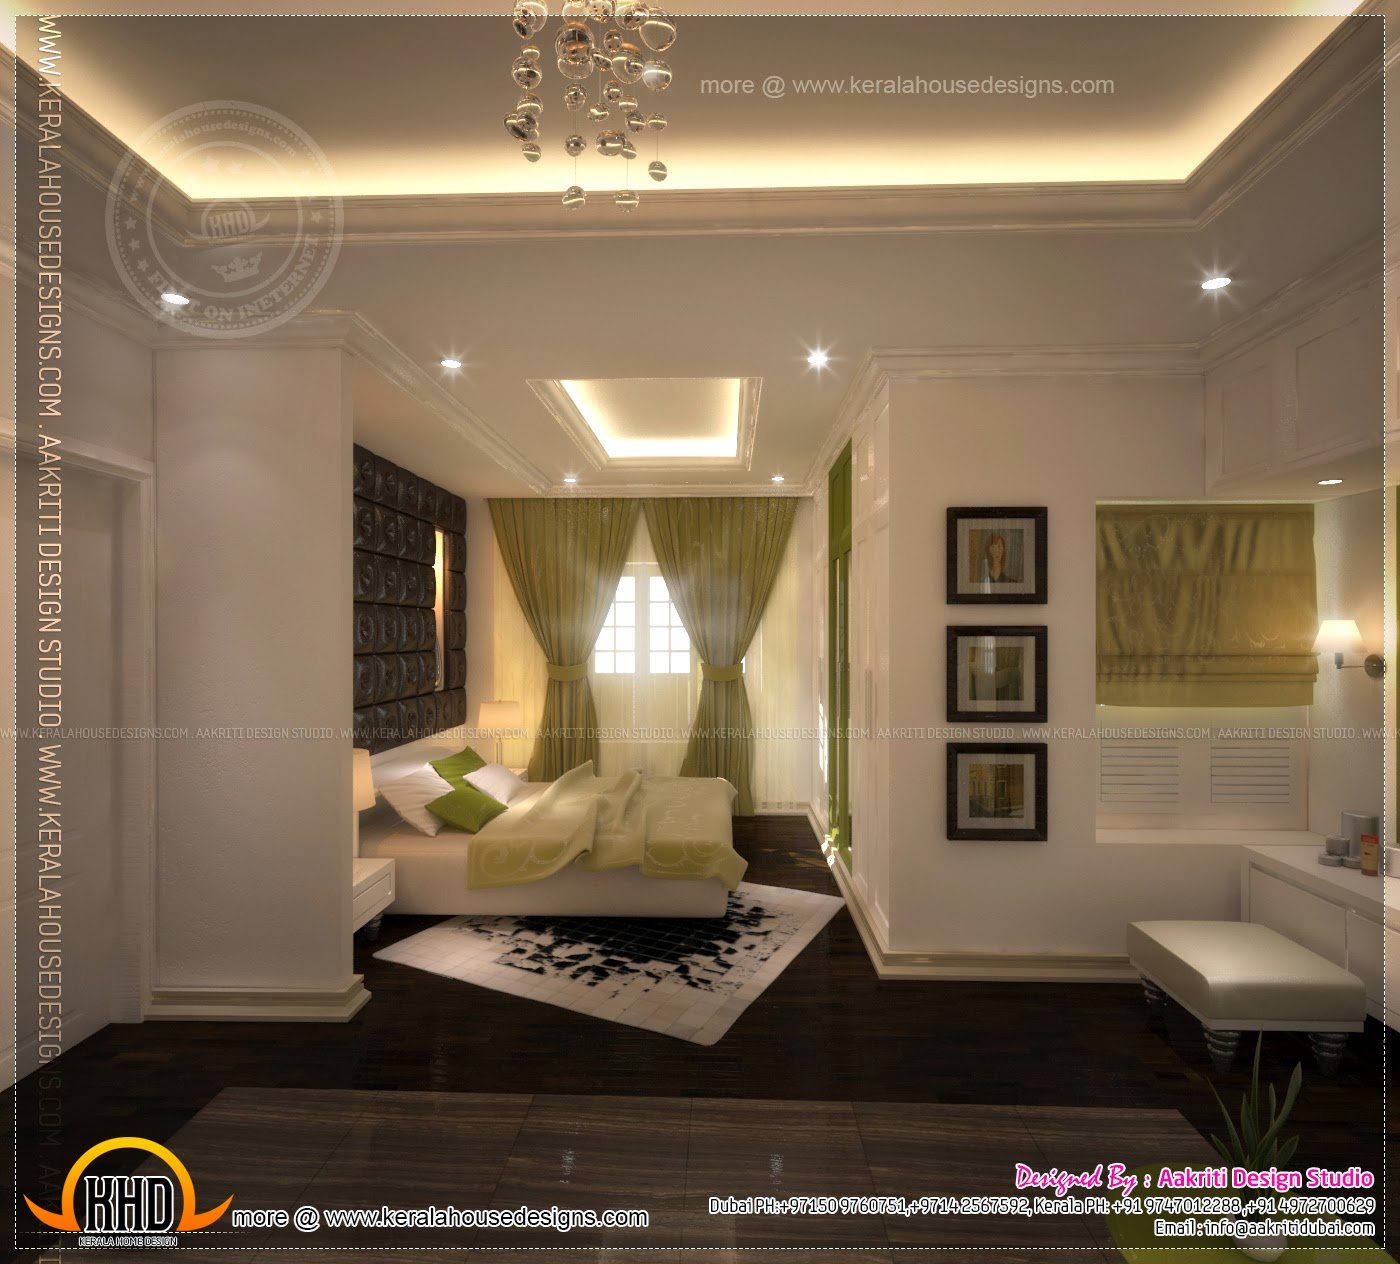 Master bedroom and bathroom interior design indian house for Bathroom interior design dubai